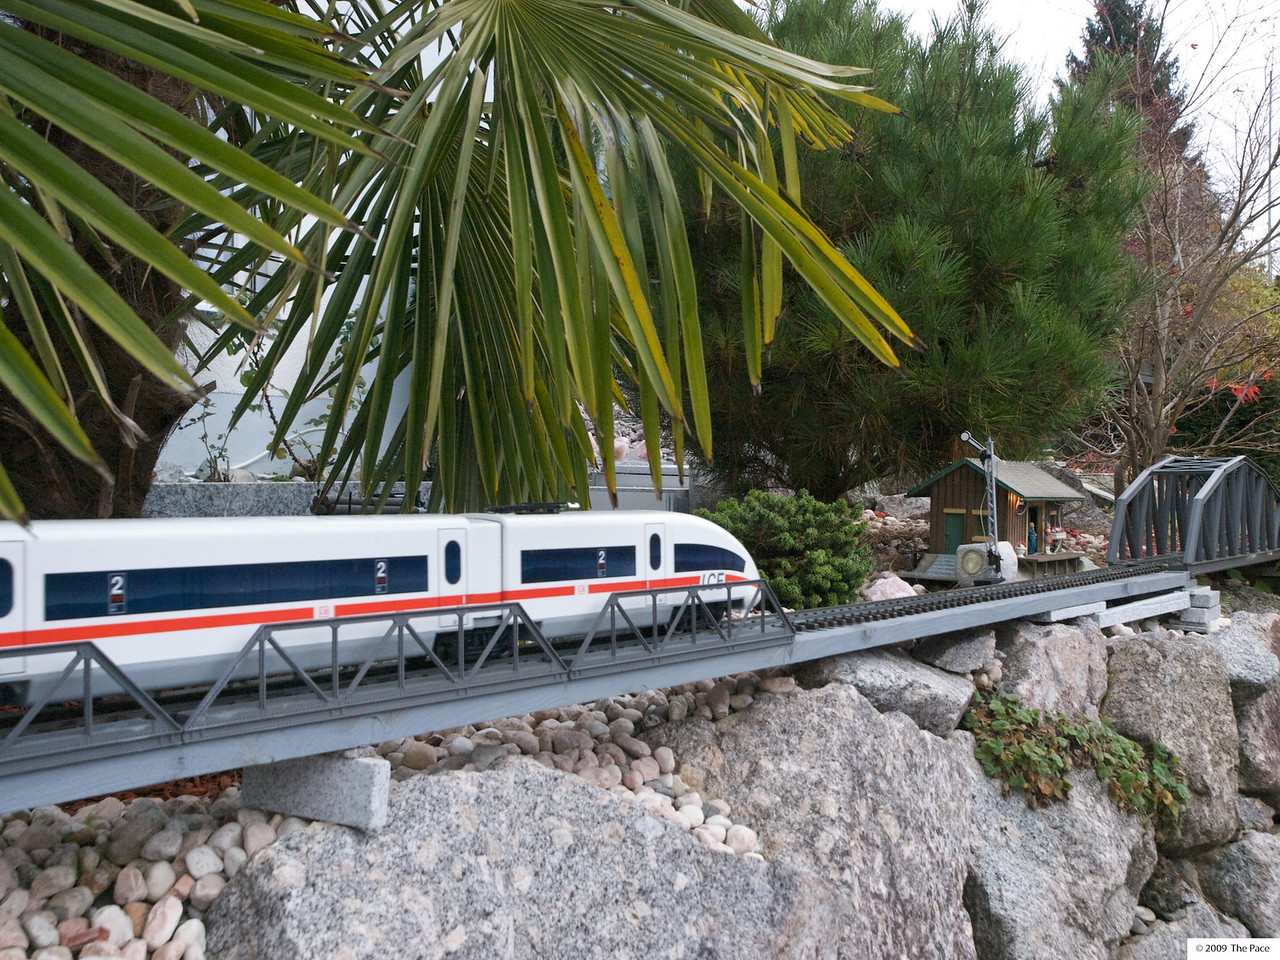 Sunday 8th Nov 2009 - Even the model trains in switzerland run on time.